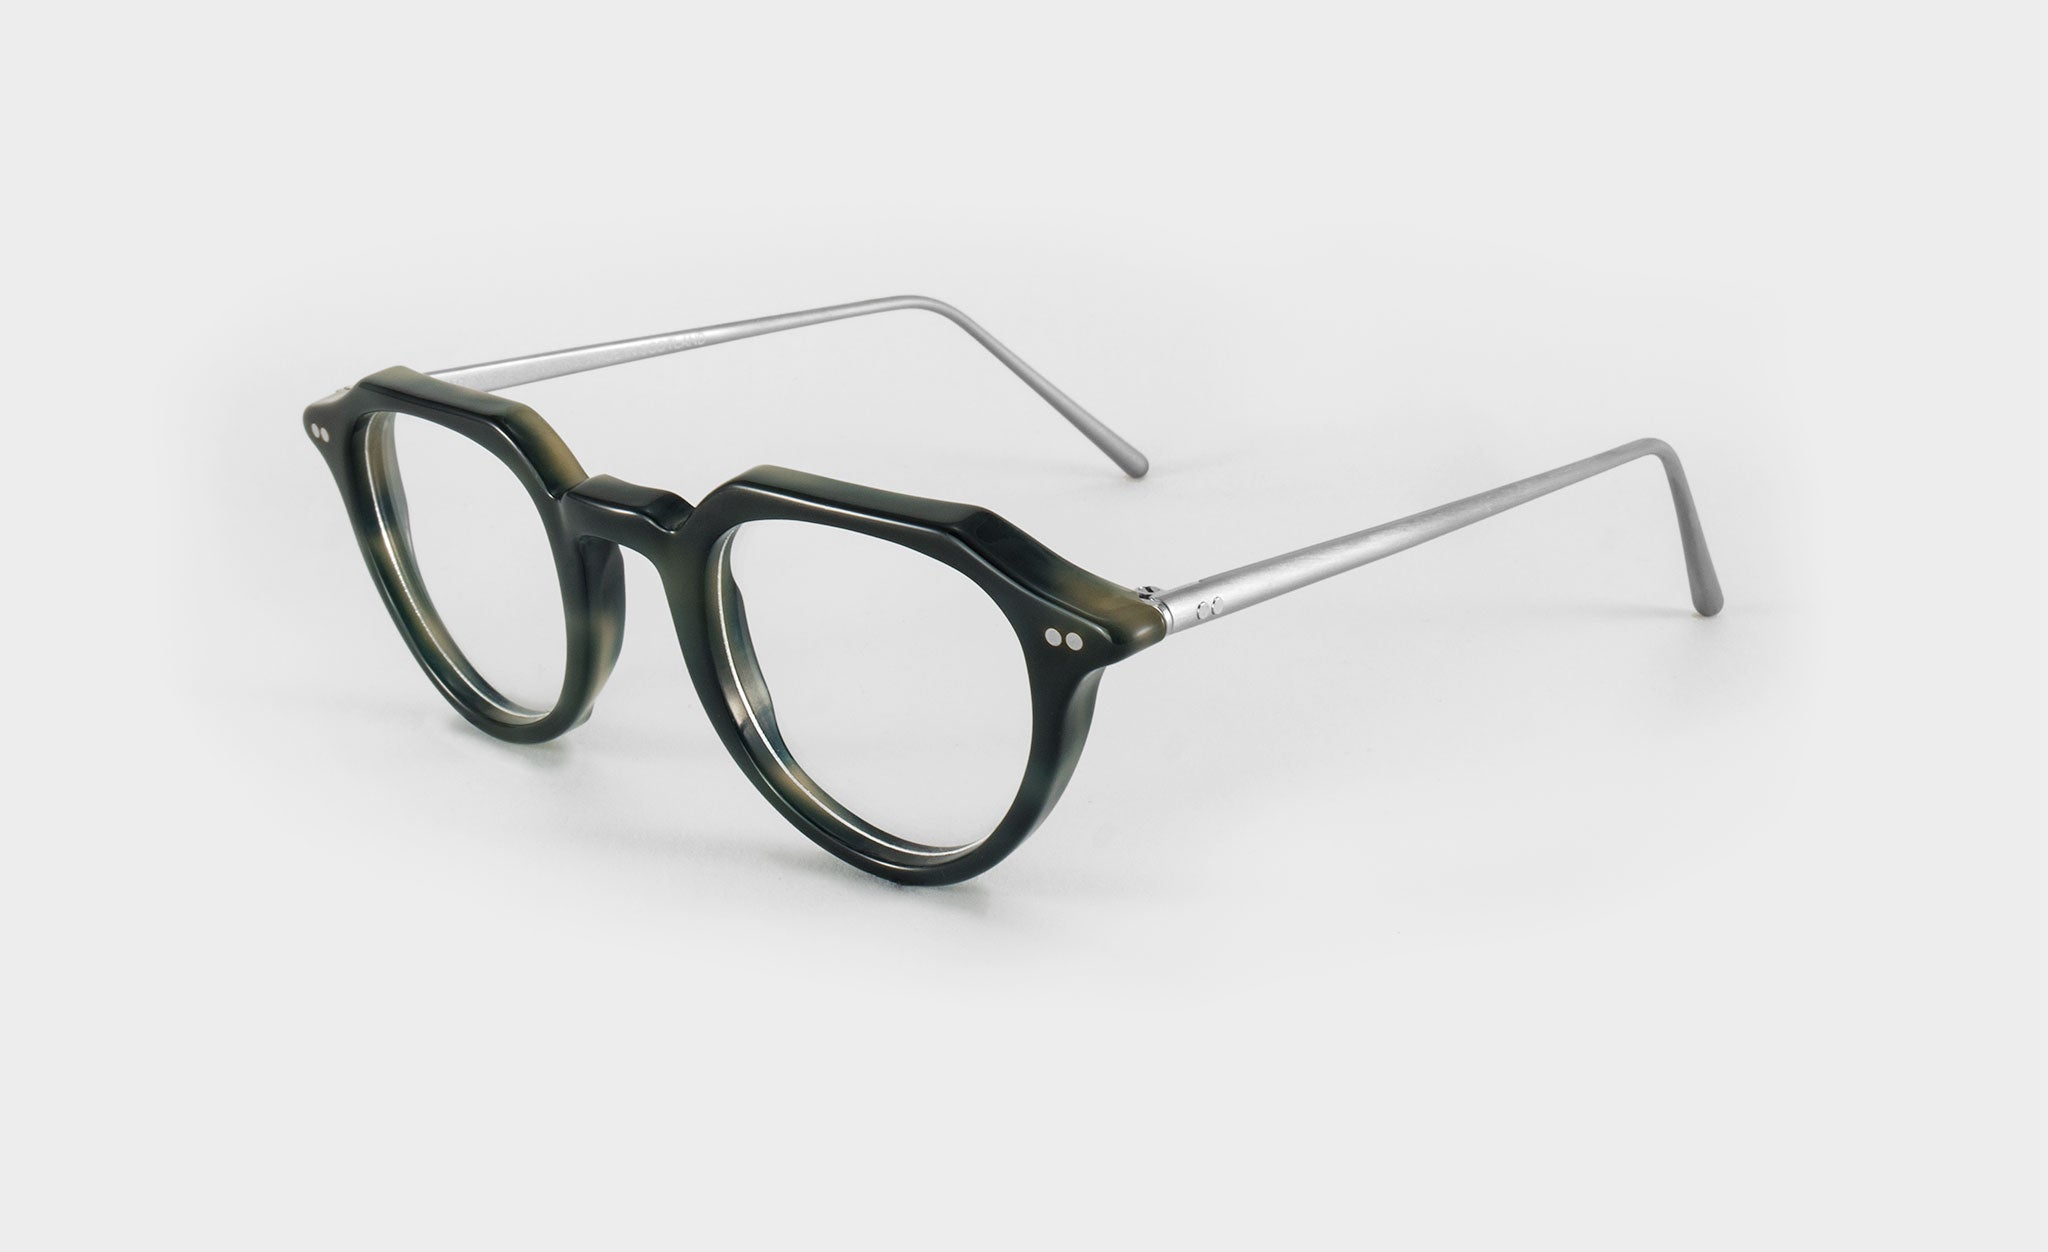 Optical glasses frame g loc side view